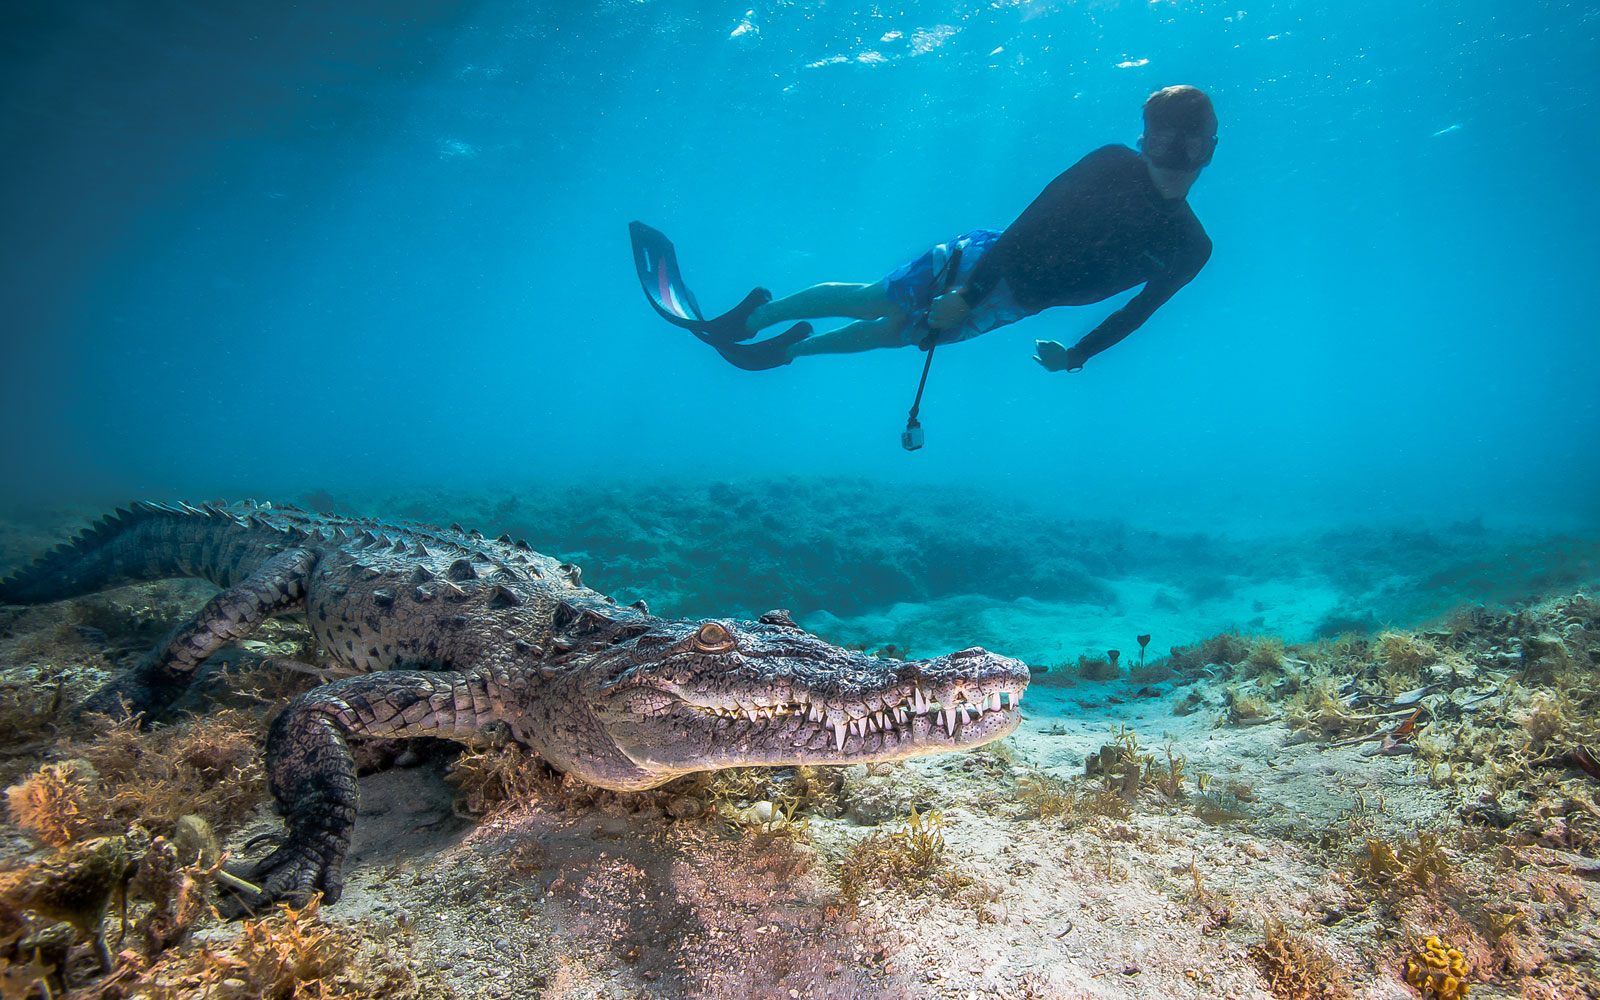 Underwater Photos Show What It's Like to Dive With Sharks and Crocodiles in Cuba